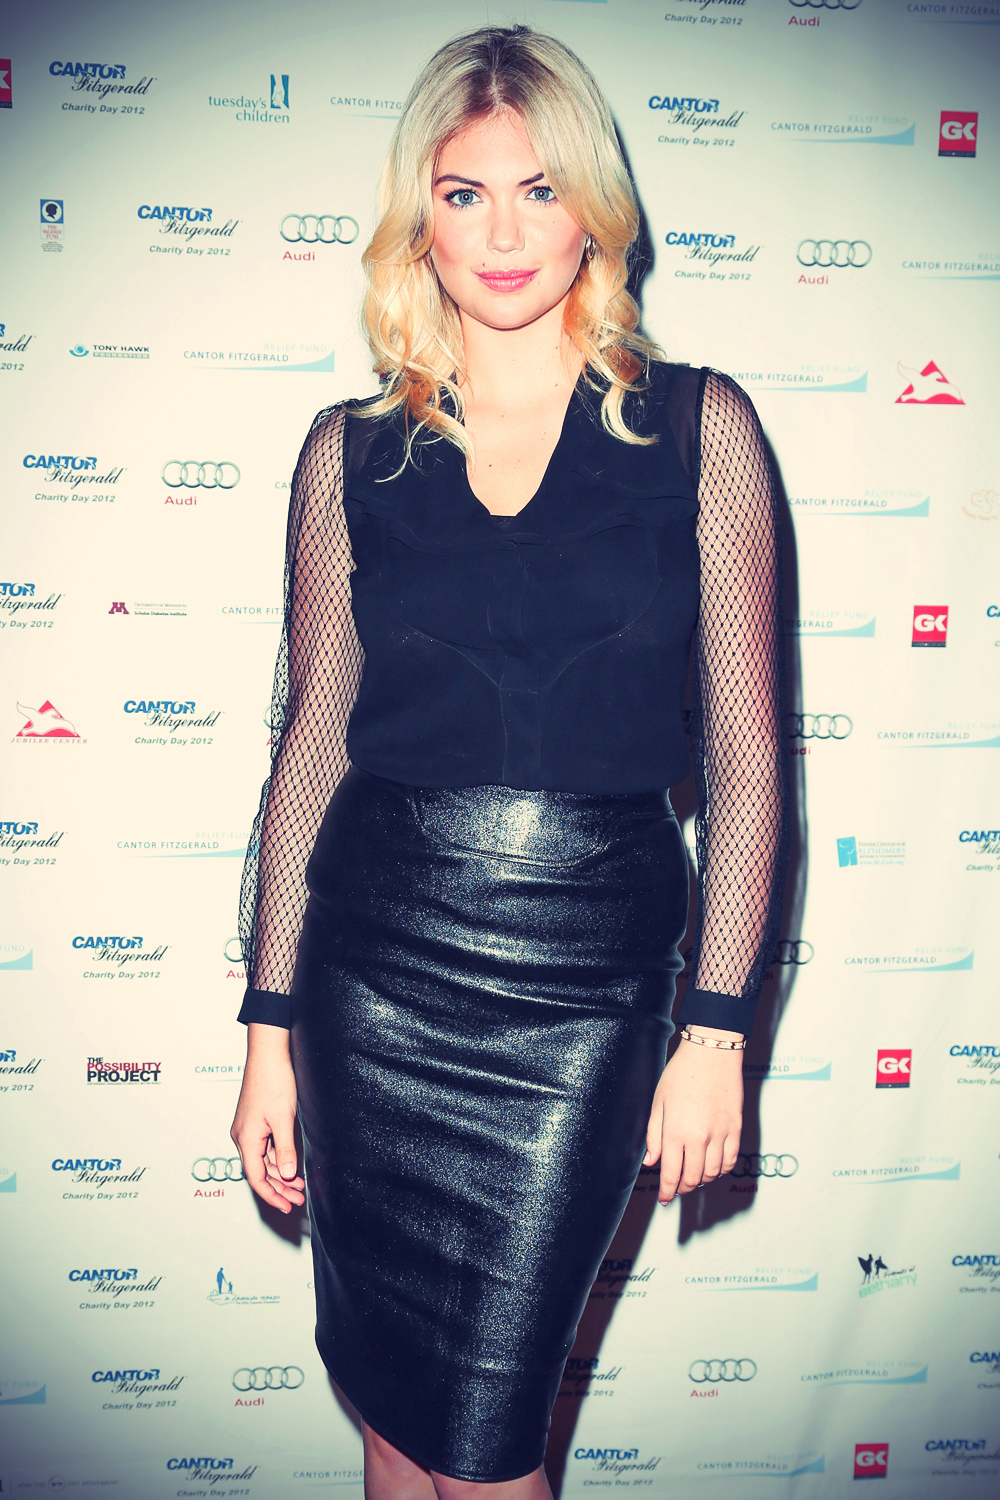 Kate Upton at Cantor Fitzgerald & BGC Partners charity event